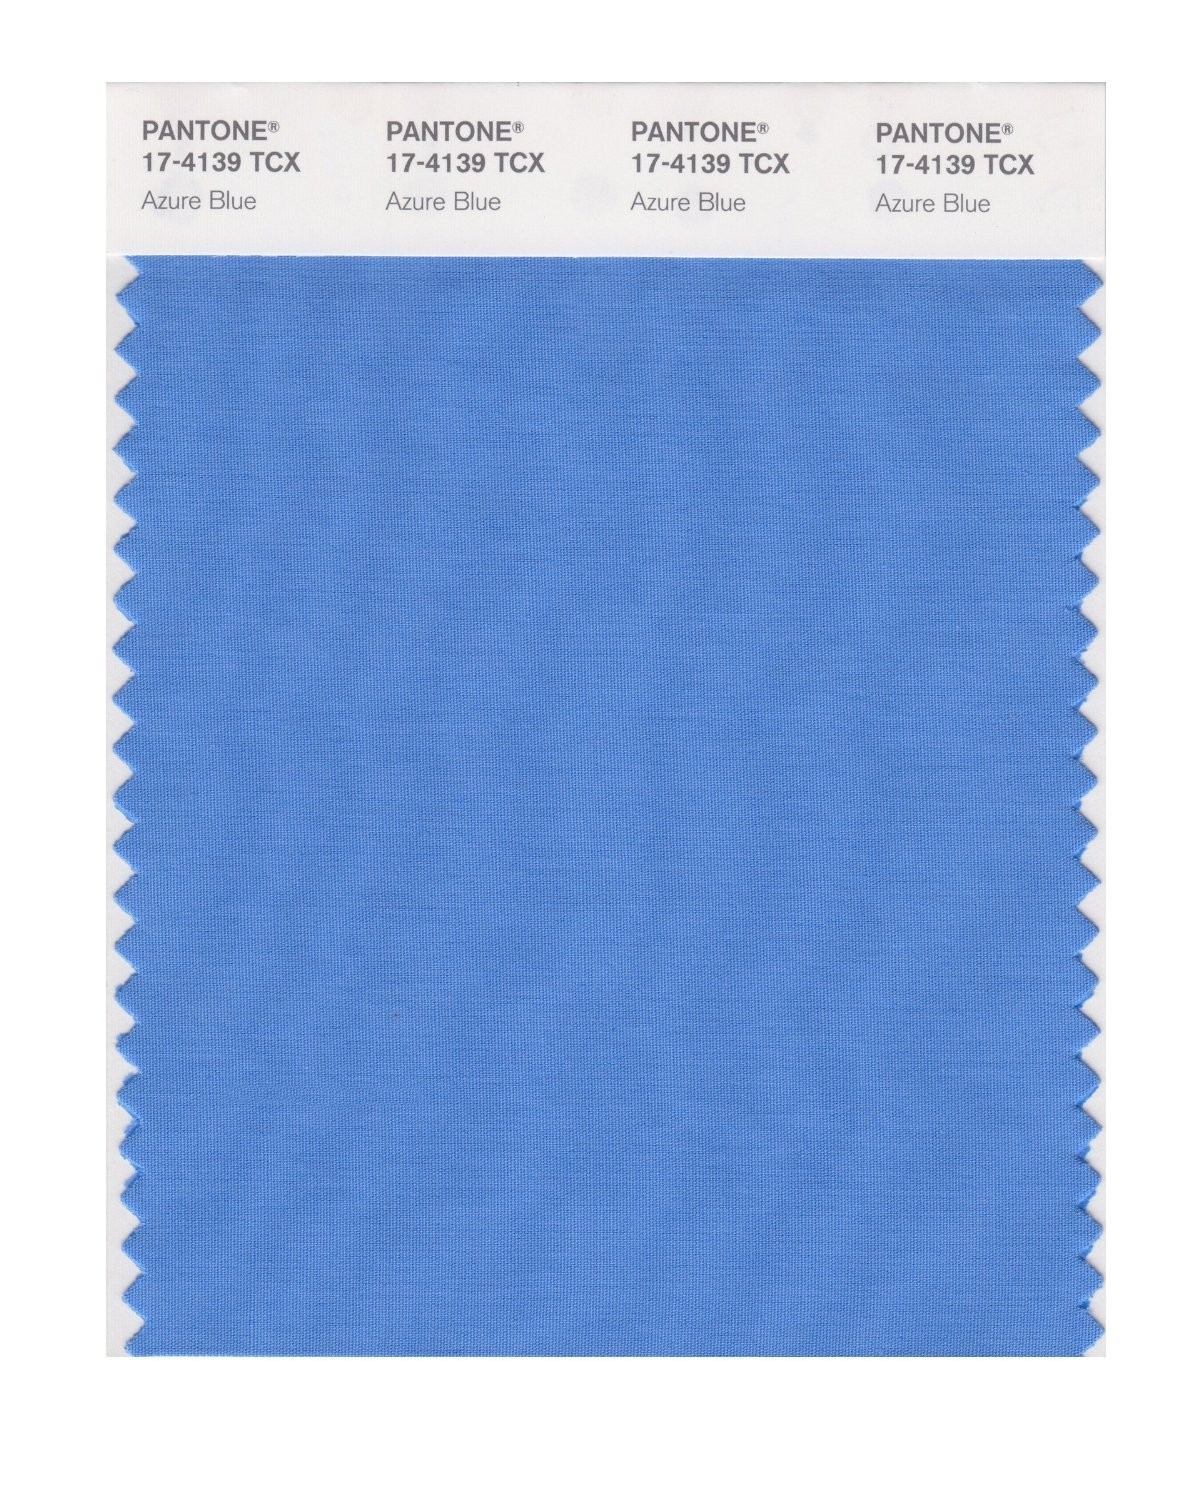 Pantone 17-4139 TCX Swatch Card Azure Blue